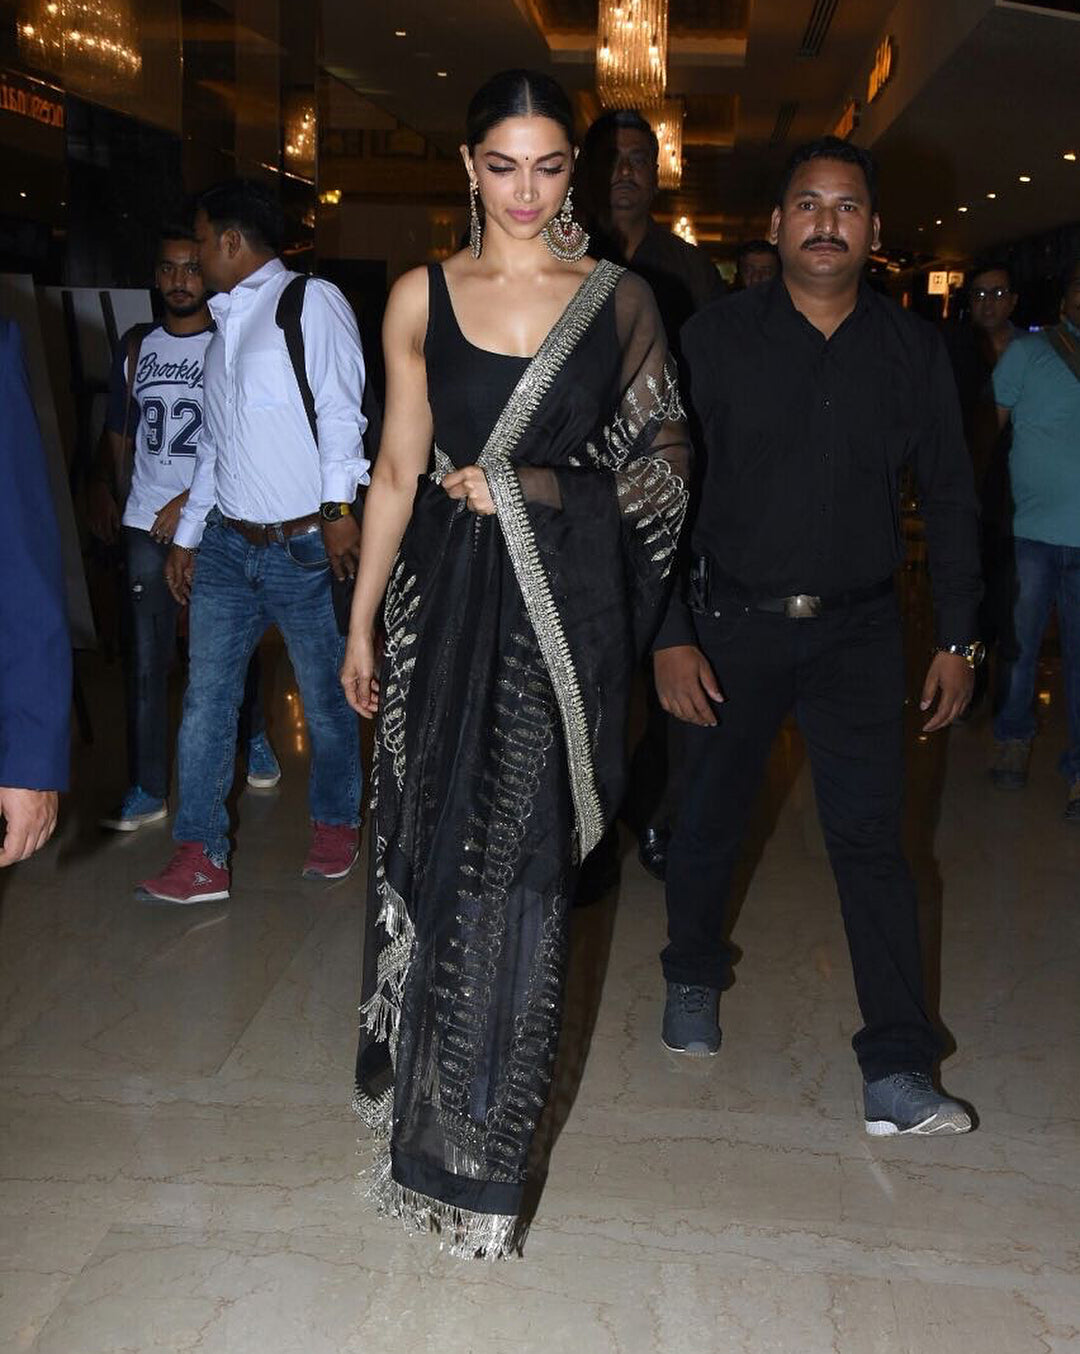 Deepika Padukone in Sabyasachi's Churidaar Salwar Suit At Padmavati 3D Trailer Launch Event